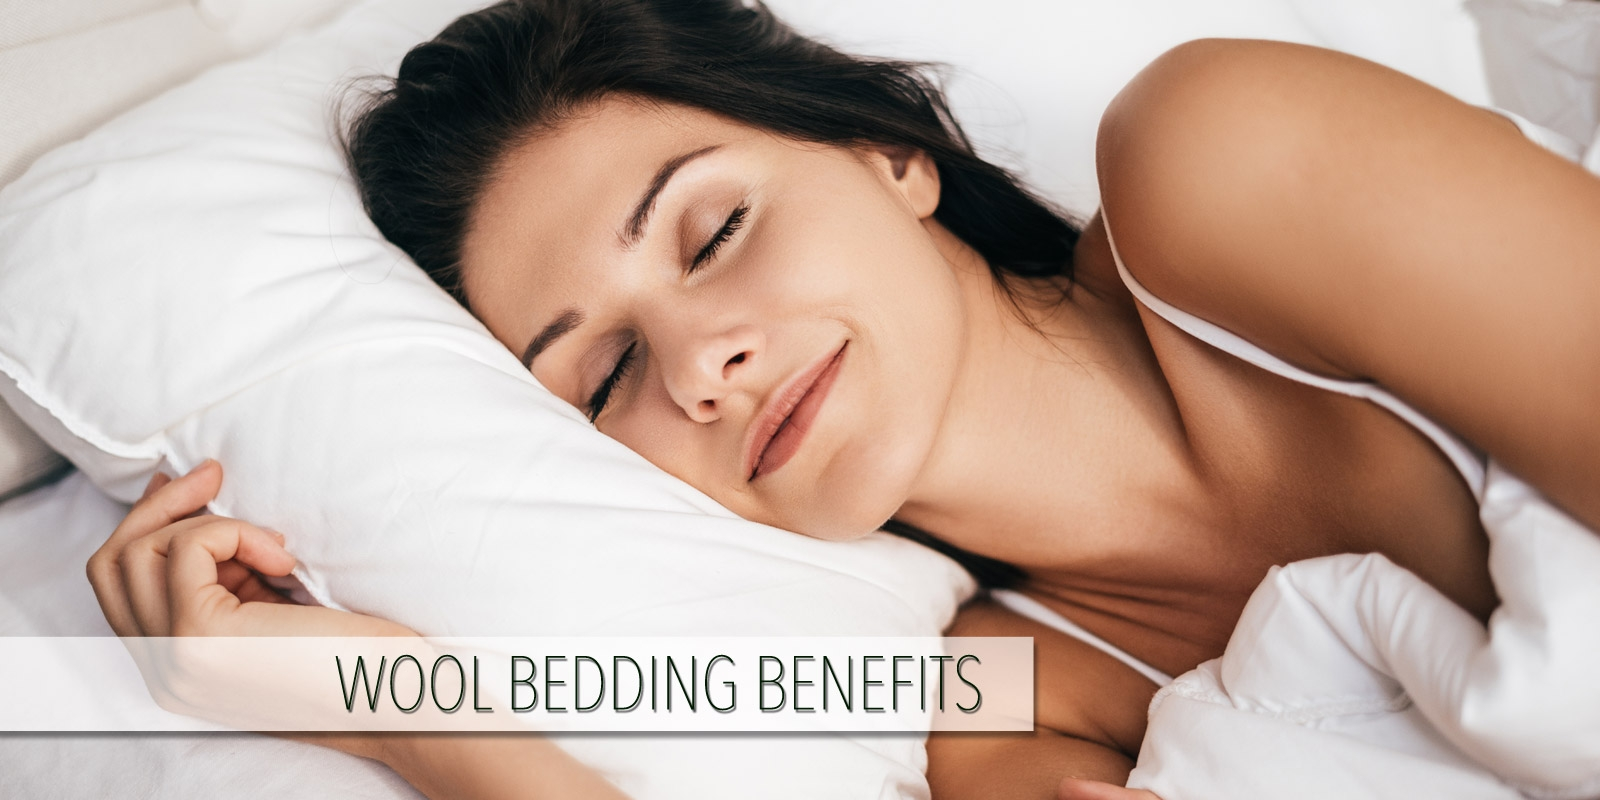 Wool Bedding Benefits